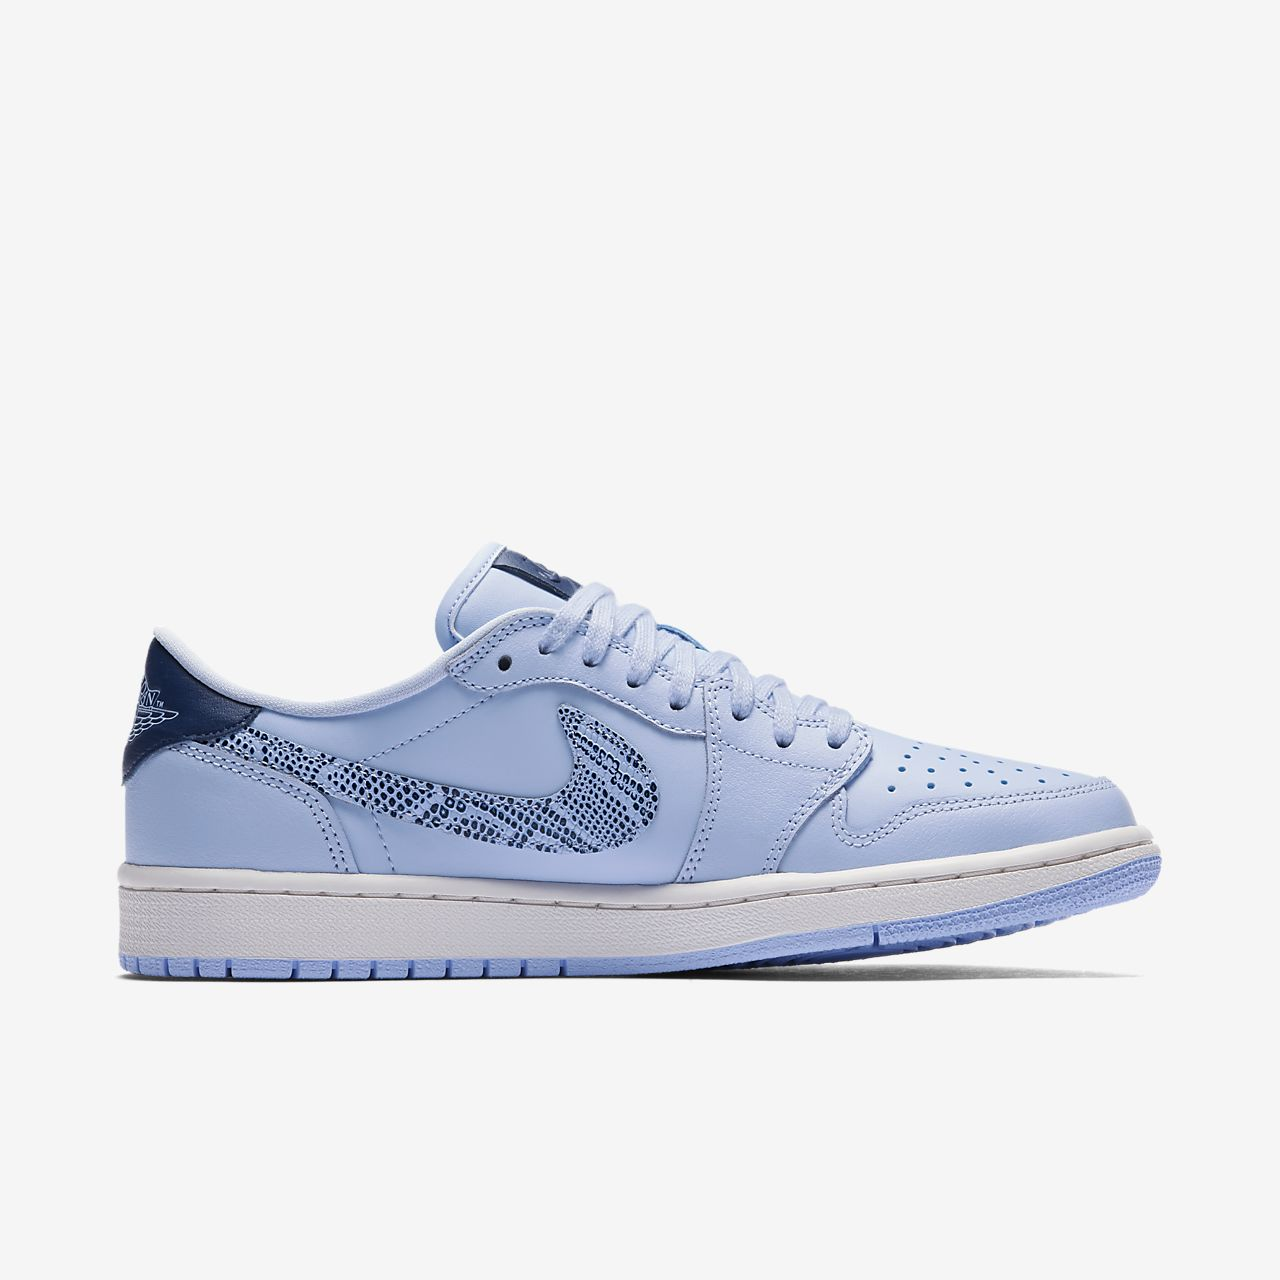 hot sale online d96b4 1ced8 ... Air Jordan 1 Retro Low OG Women s Shoe